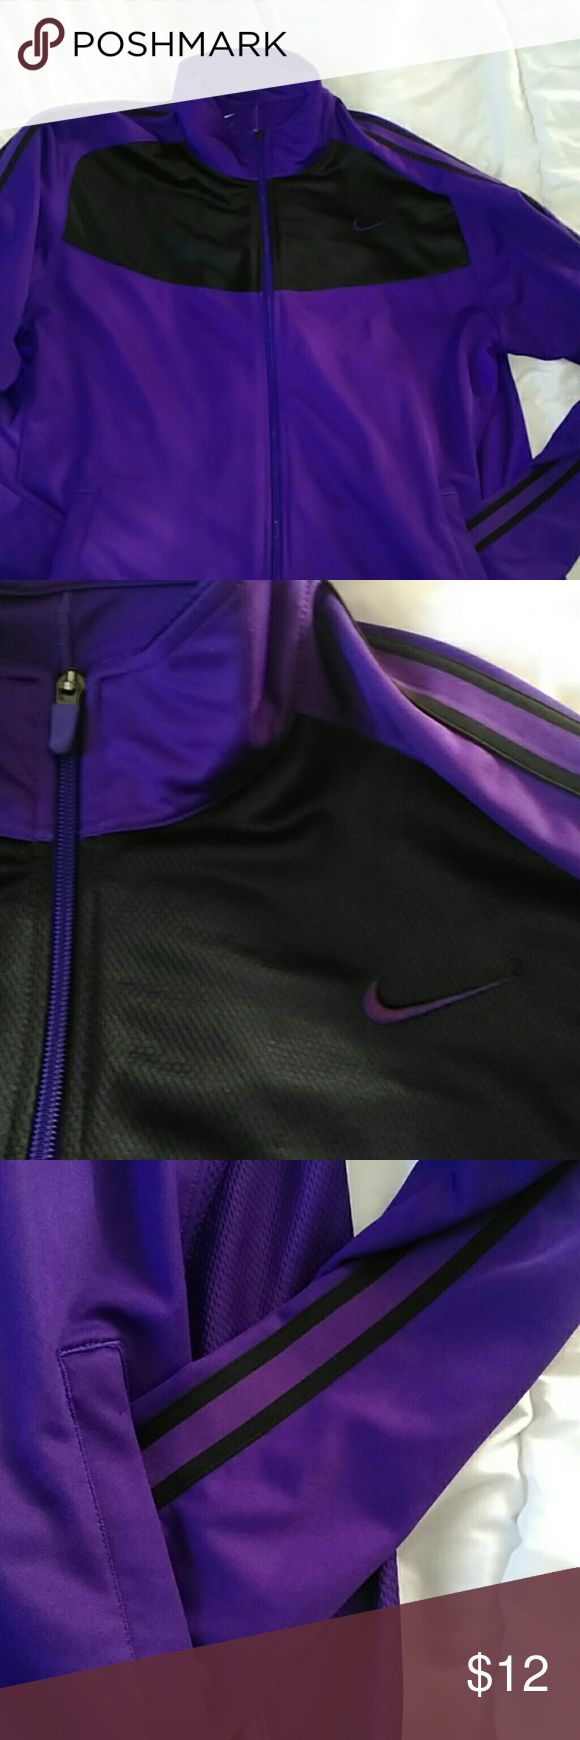 Ladies Nike zip up! Size large! Hi! This is a woman's Nike zip track jacket. It's size large, the colors are a dark purple with black stripes coming down the sleeves and black going across the chest with a purple Nike sign. It has 2 front pockets. Excellent condition!!! Please let me know if you have any questions, thanks for looking, have a great day! Nike Tops Sweatshirts & Hoodies